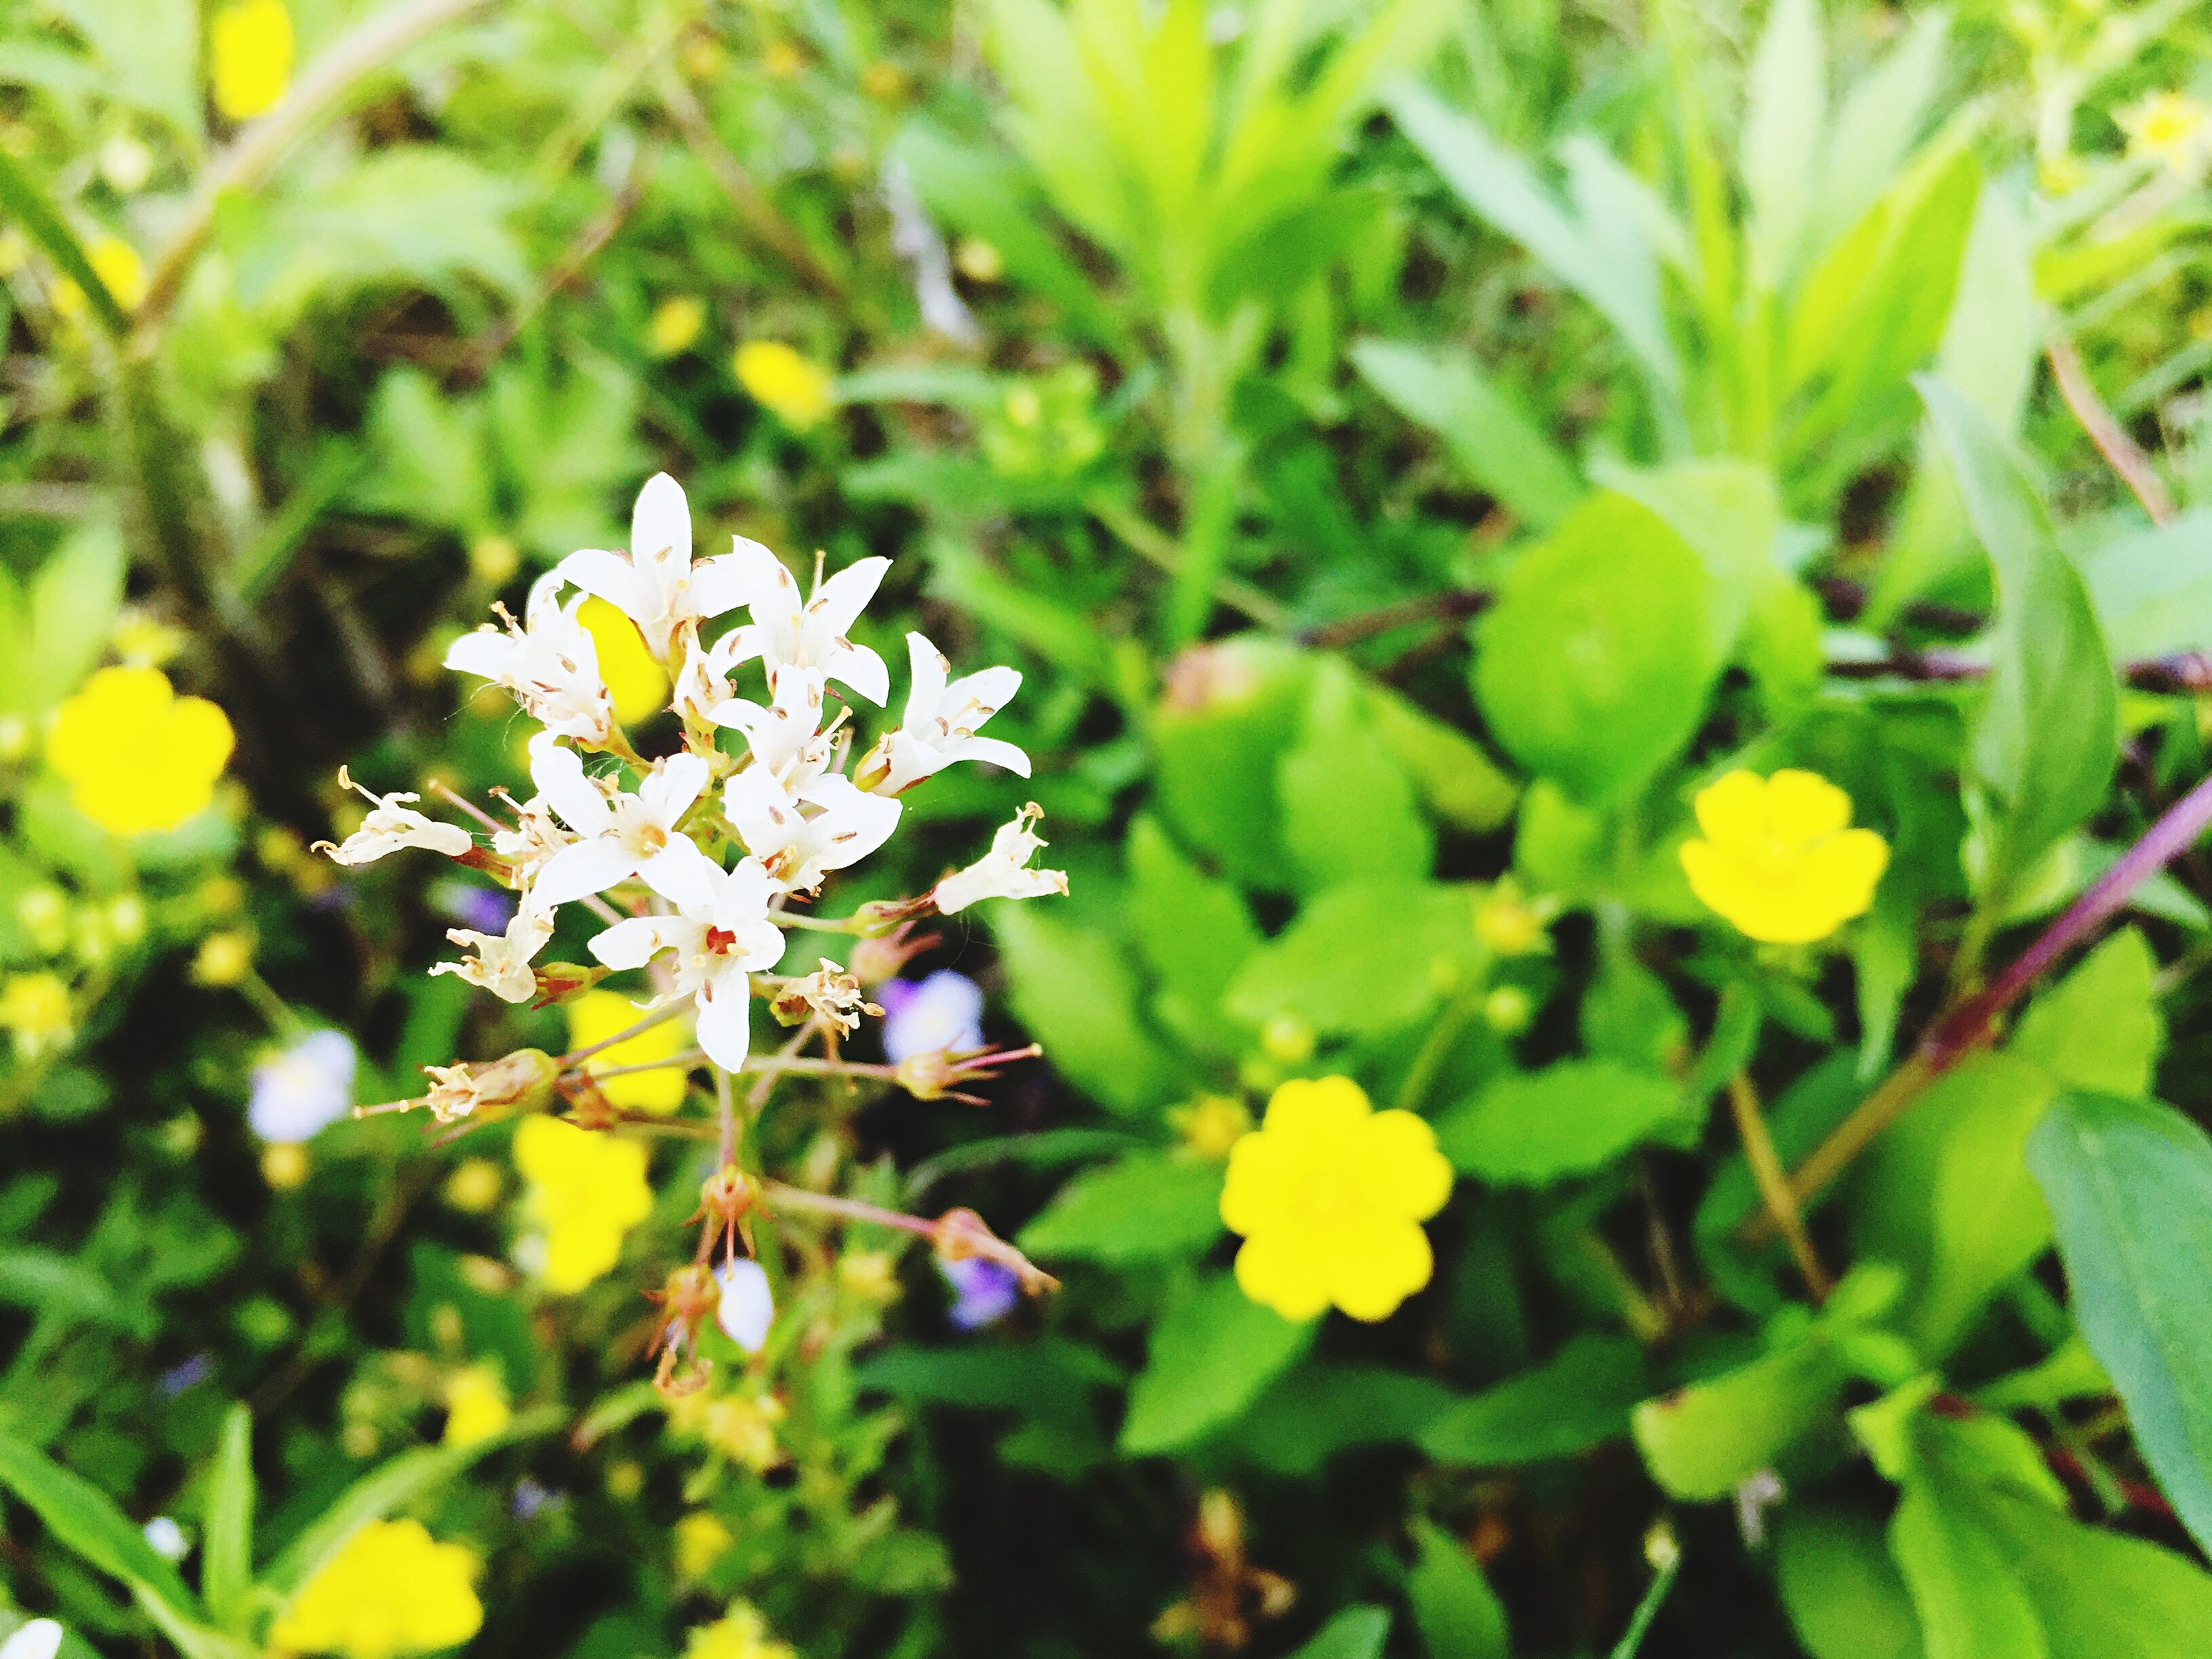 flower, freshness, growth, petal, fragility, yellow, beauty in nature, flower head, leaf, blooming, plant, nature, white color, focus on foreground, close-up, green color, in bloom, blossom, day, outdoors